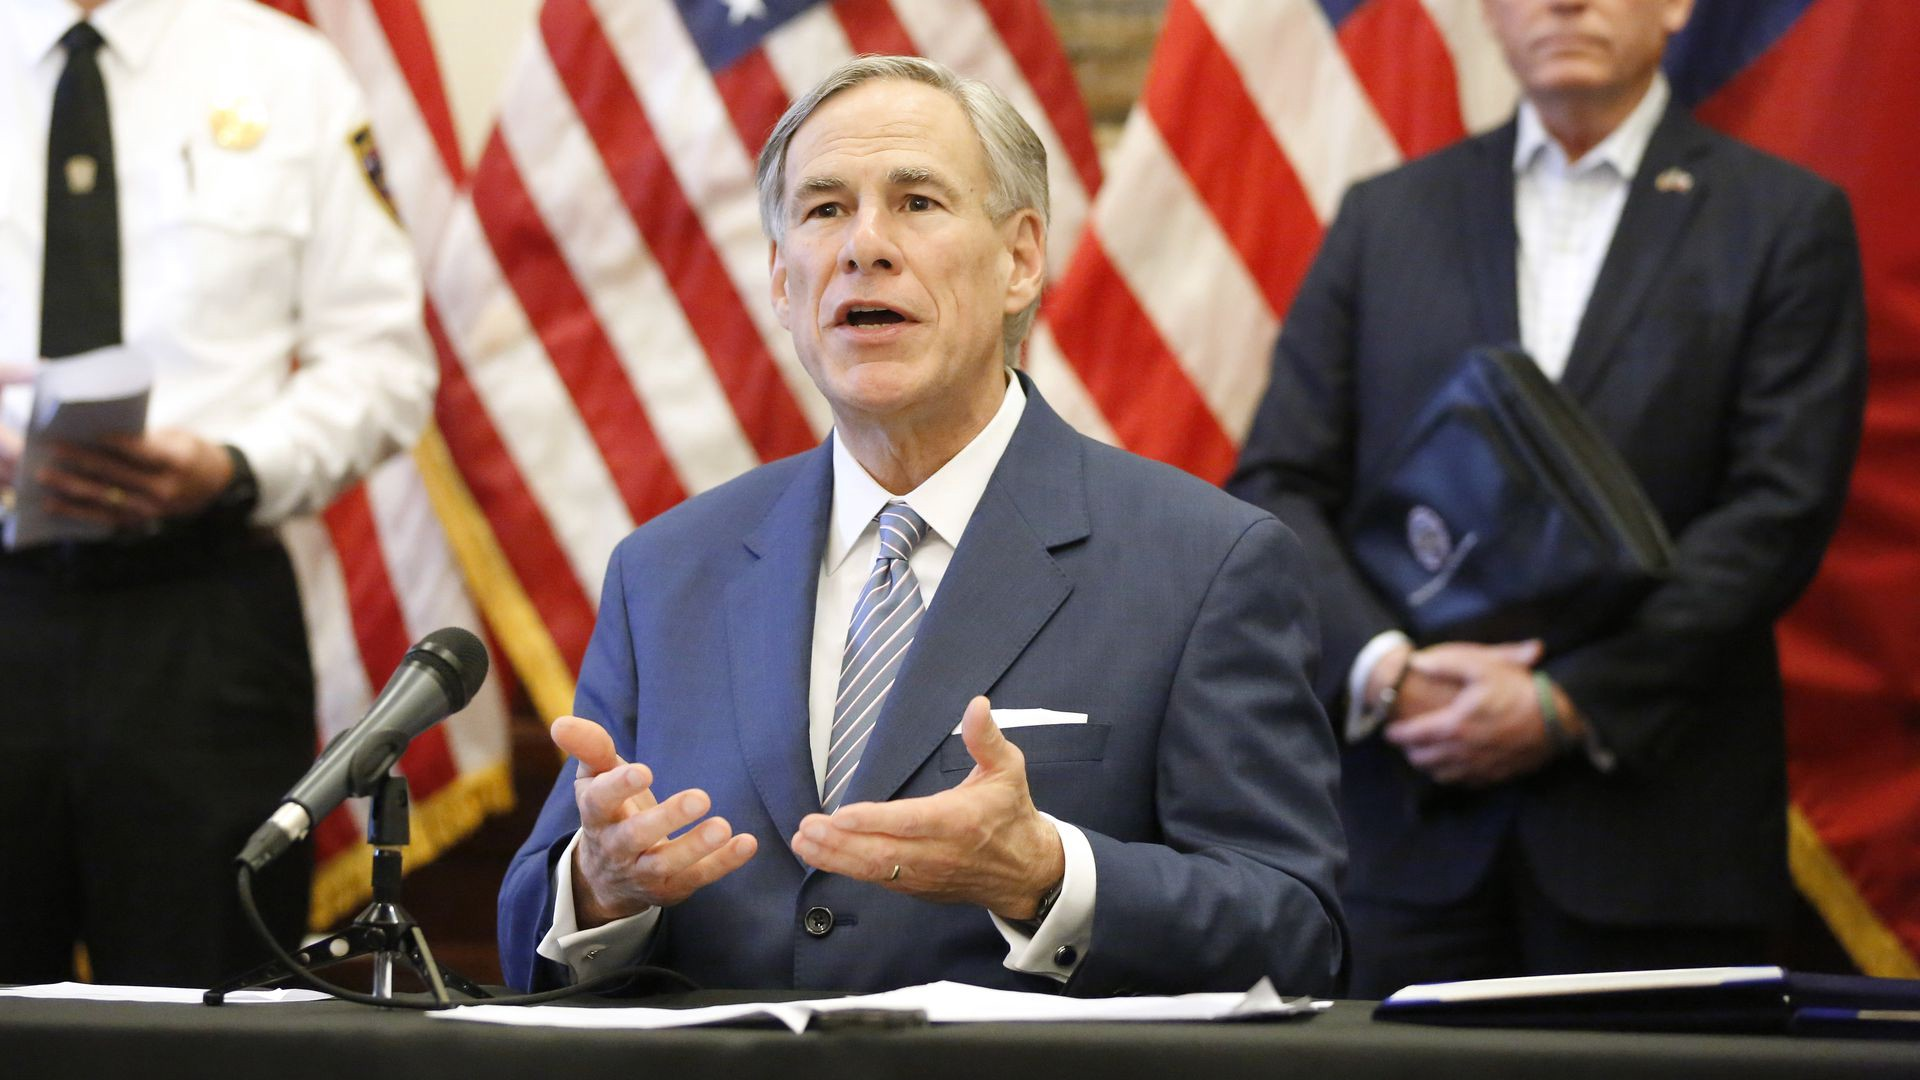 Governor of Texas finally wakes up, when will some others??